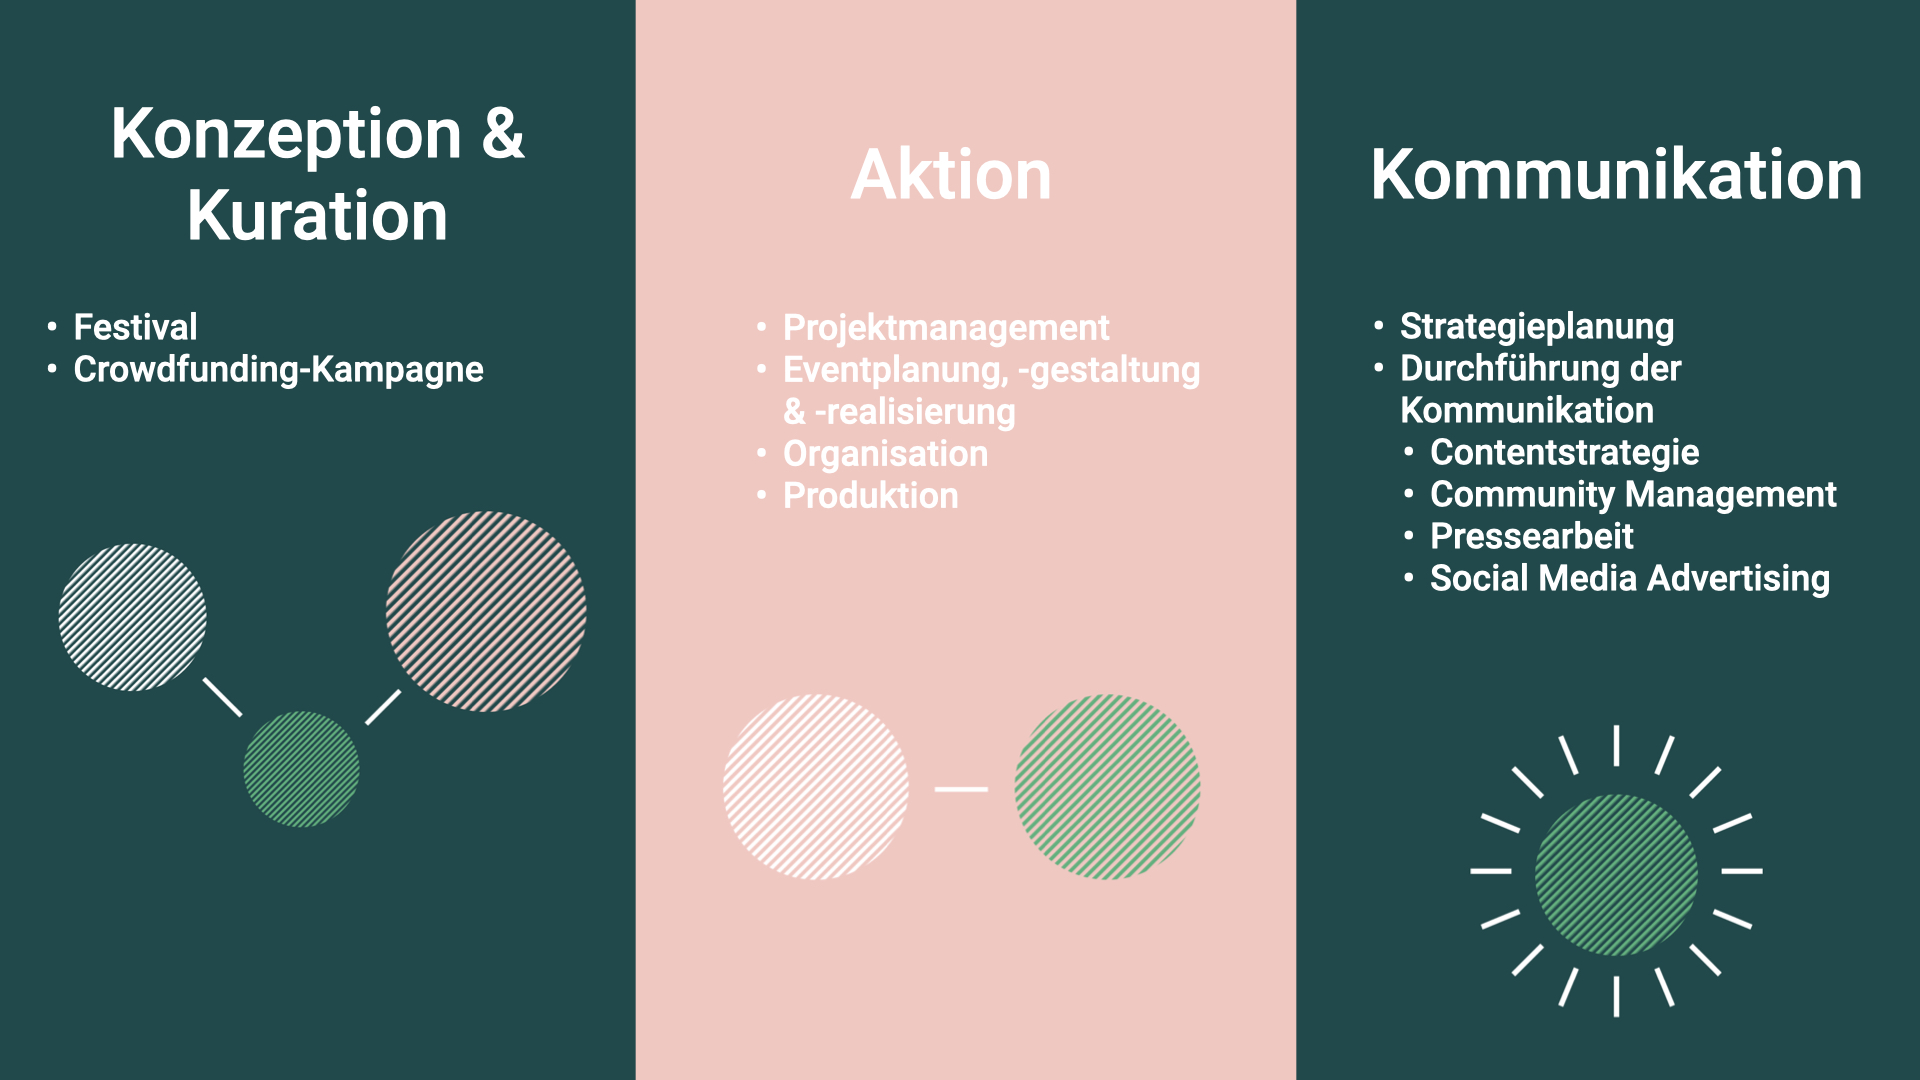 Grafik mit Leistungen von Visionistas: Konzeption & Kuration: Festival, Crowdfunding Kampagne. Aktion: Projektmanagement, Eventplanung, -gestaltung & -realisierung, Organisation, Produktion. Kommunikation: Strategieplanung, Durchführung der Kommunikation, Contentstrategie, Community Management, Pressearbeit, Social Media Advertising,